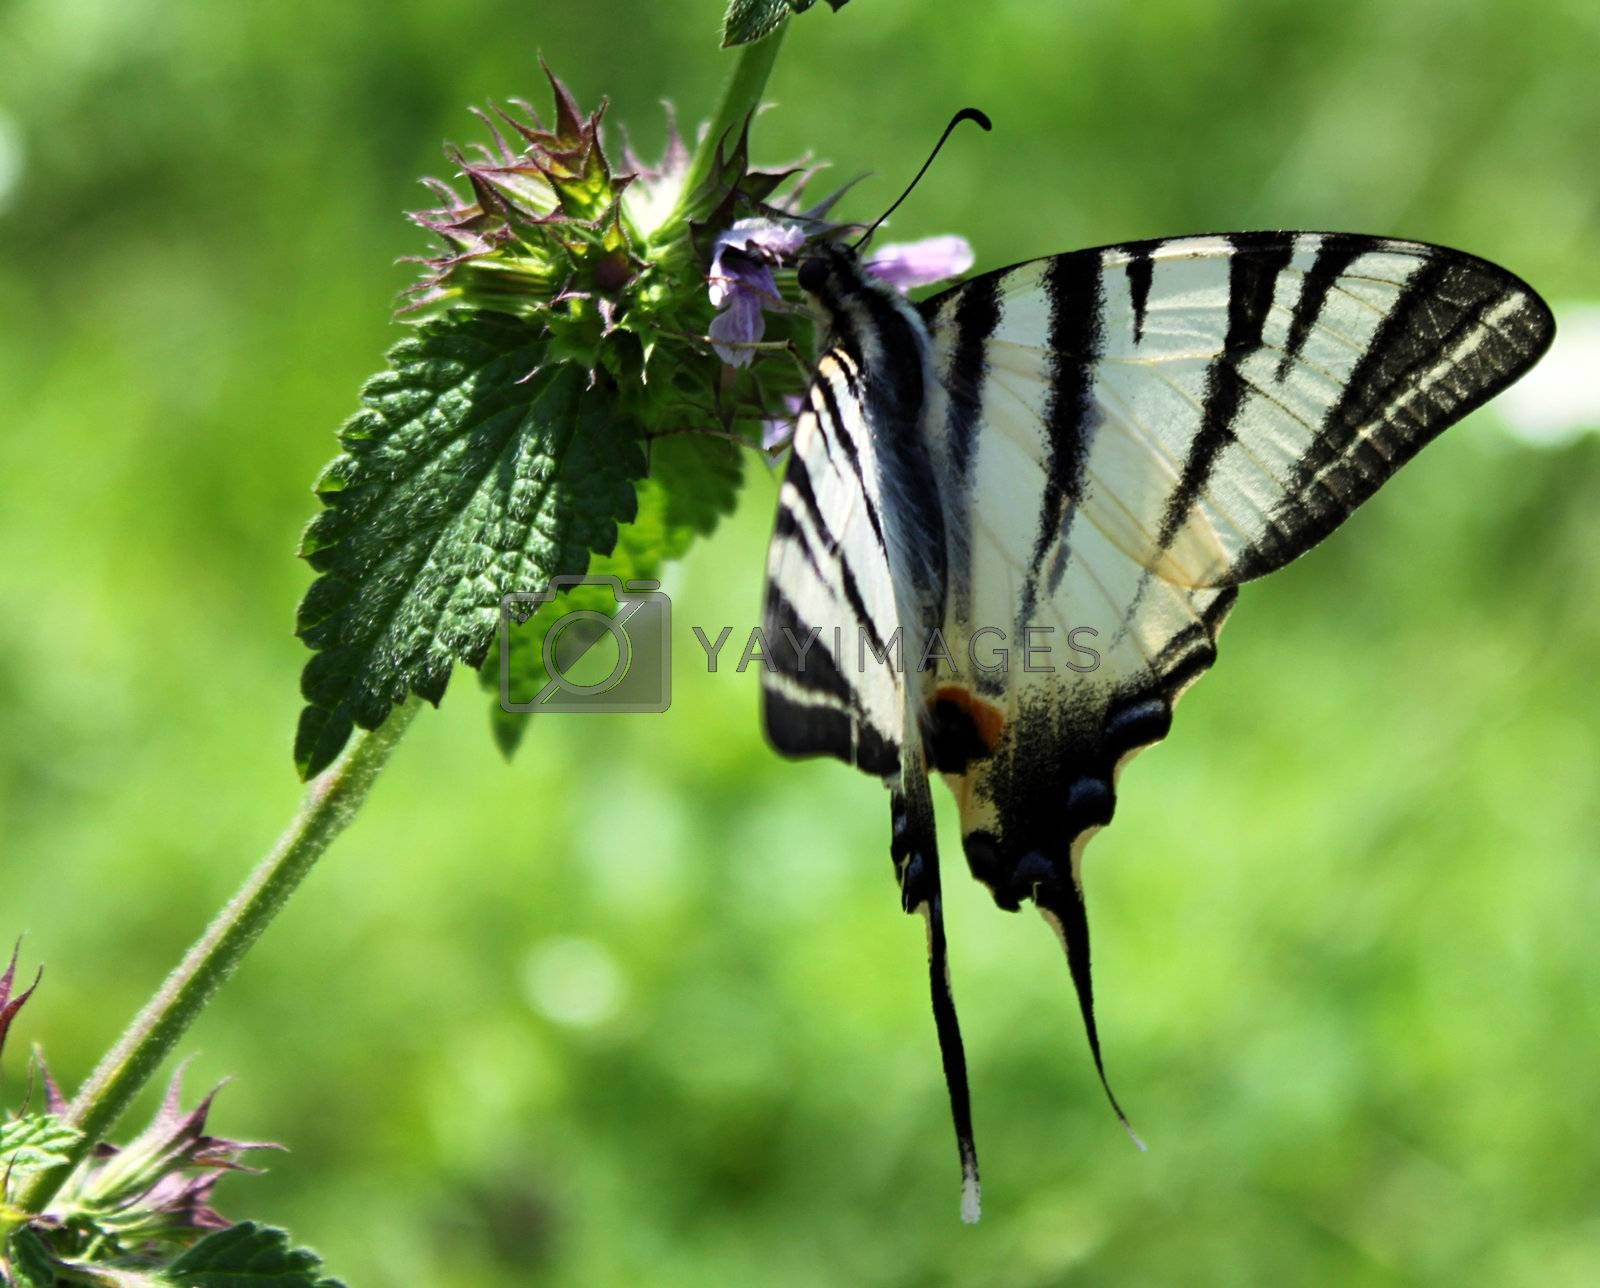 butterfly (Scarce Swallowtail) on wild flower